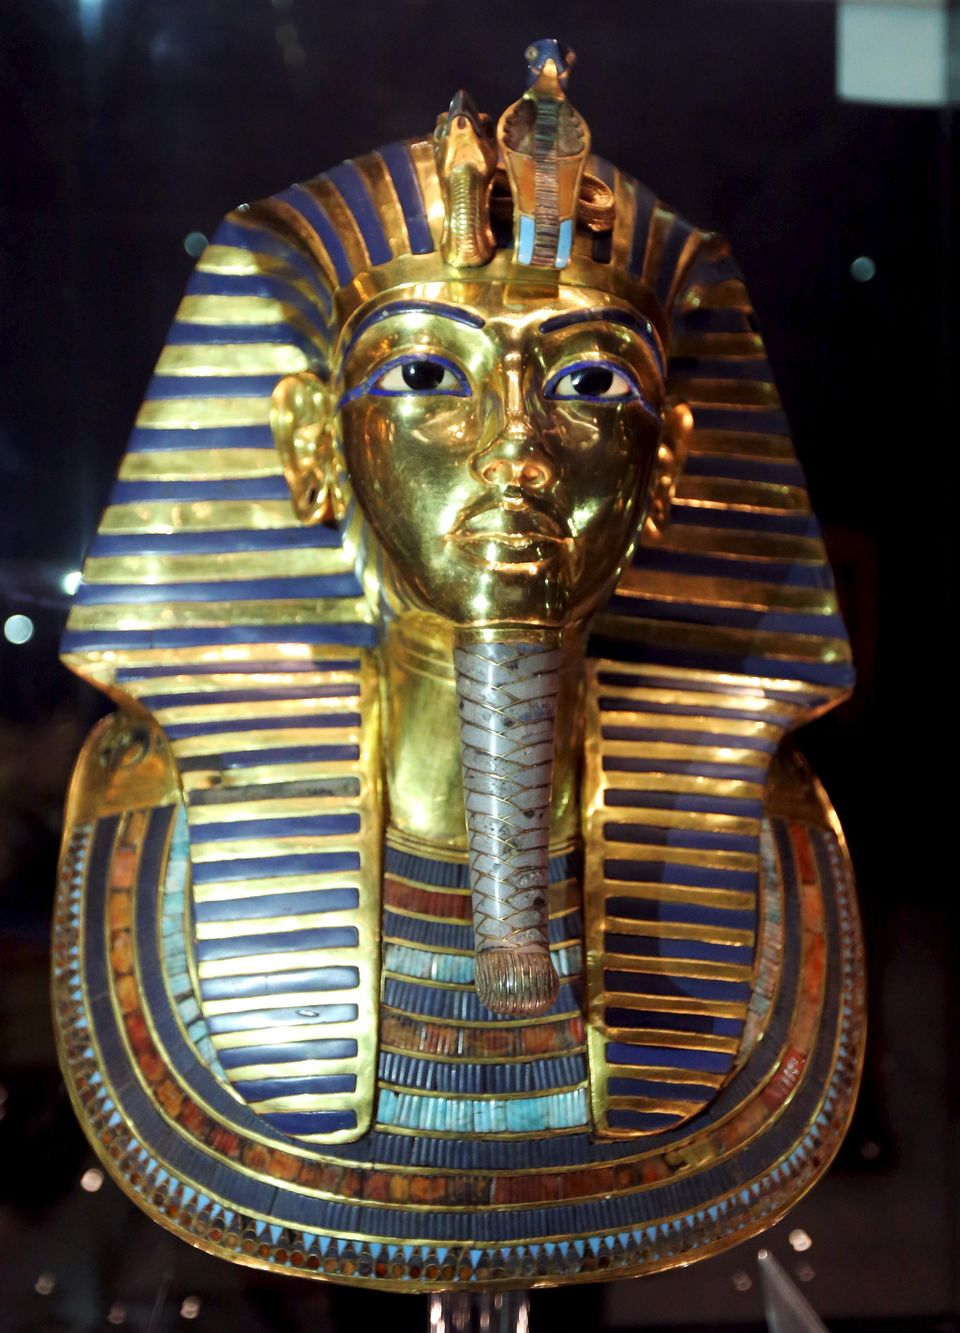 The golden mask of King Tutankhamun is displayed inside a glass cabinet at the Egyptian Museum in Cairo,